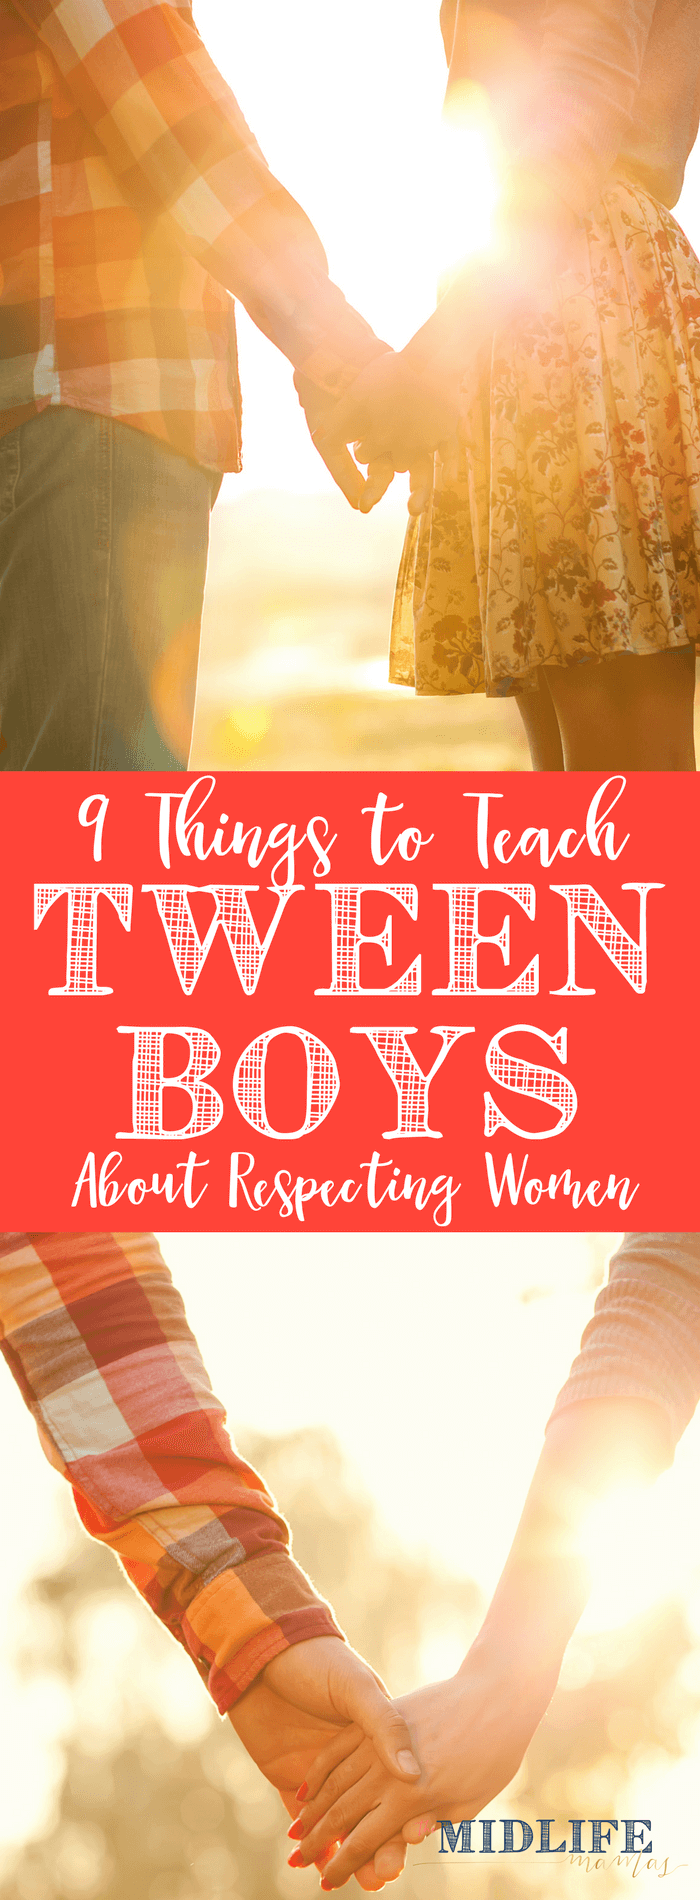 I want to raise boys not just to be men, but to be gentlemen, starts long before they are tweens or teenagers. This post is the perfect place for any mother of boys to start teaching her boys to respect women. There are so many small things that we can teach and model - starting even when they are toddlers! www.themidlifemamas.com